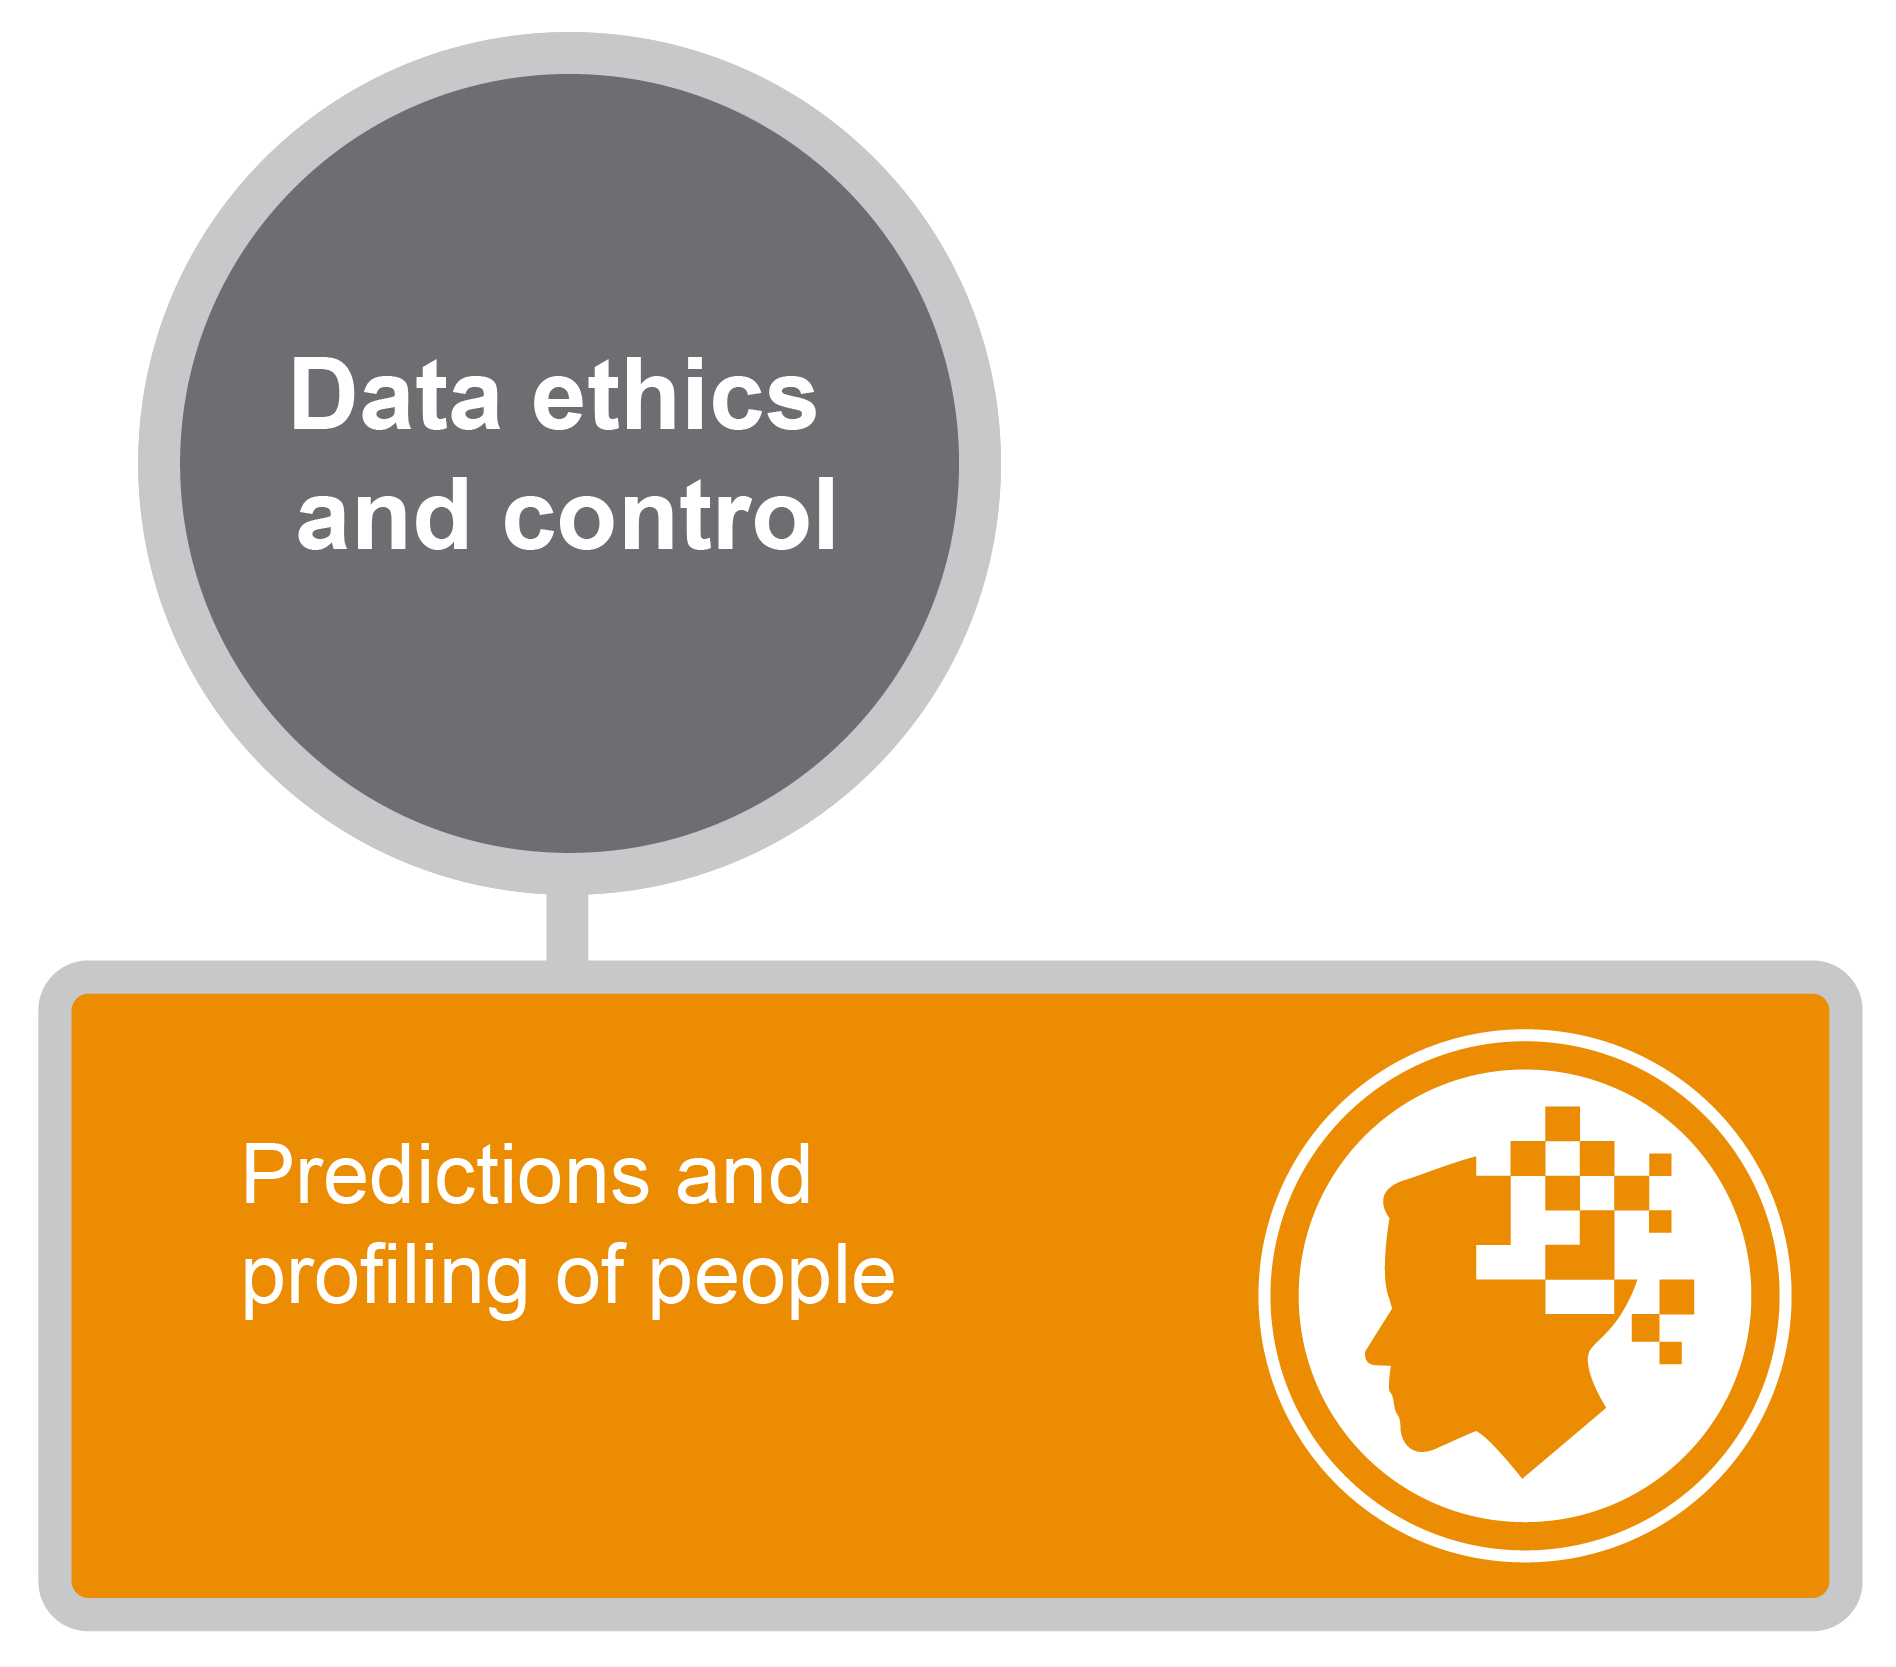 Predictions and profiling of people graphic